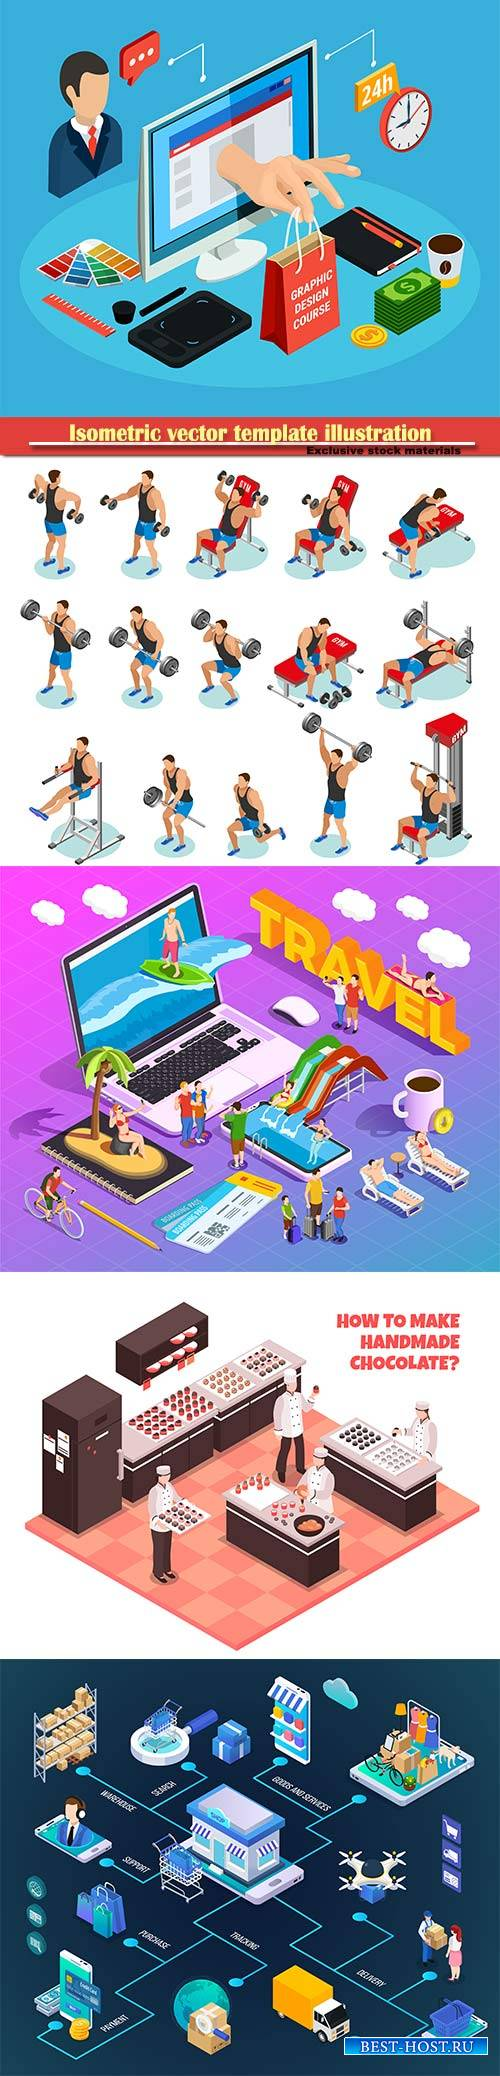 Isometric vector template illustration # 30